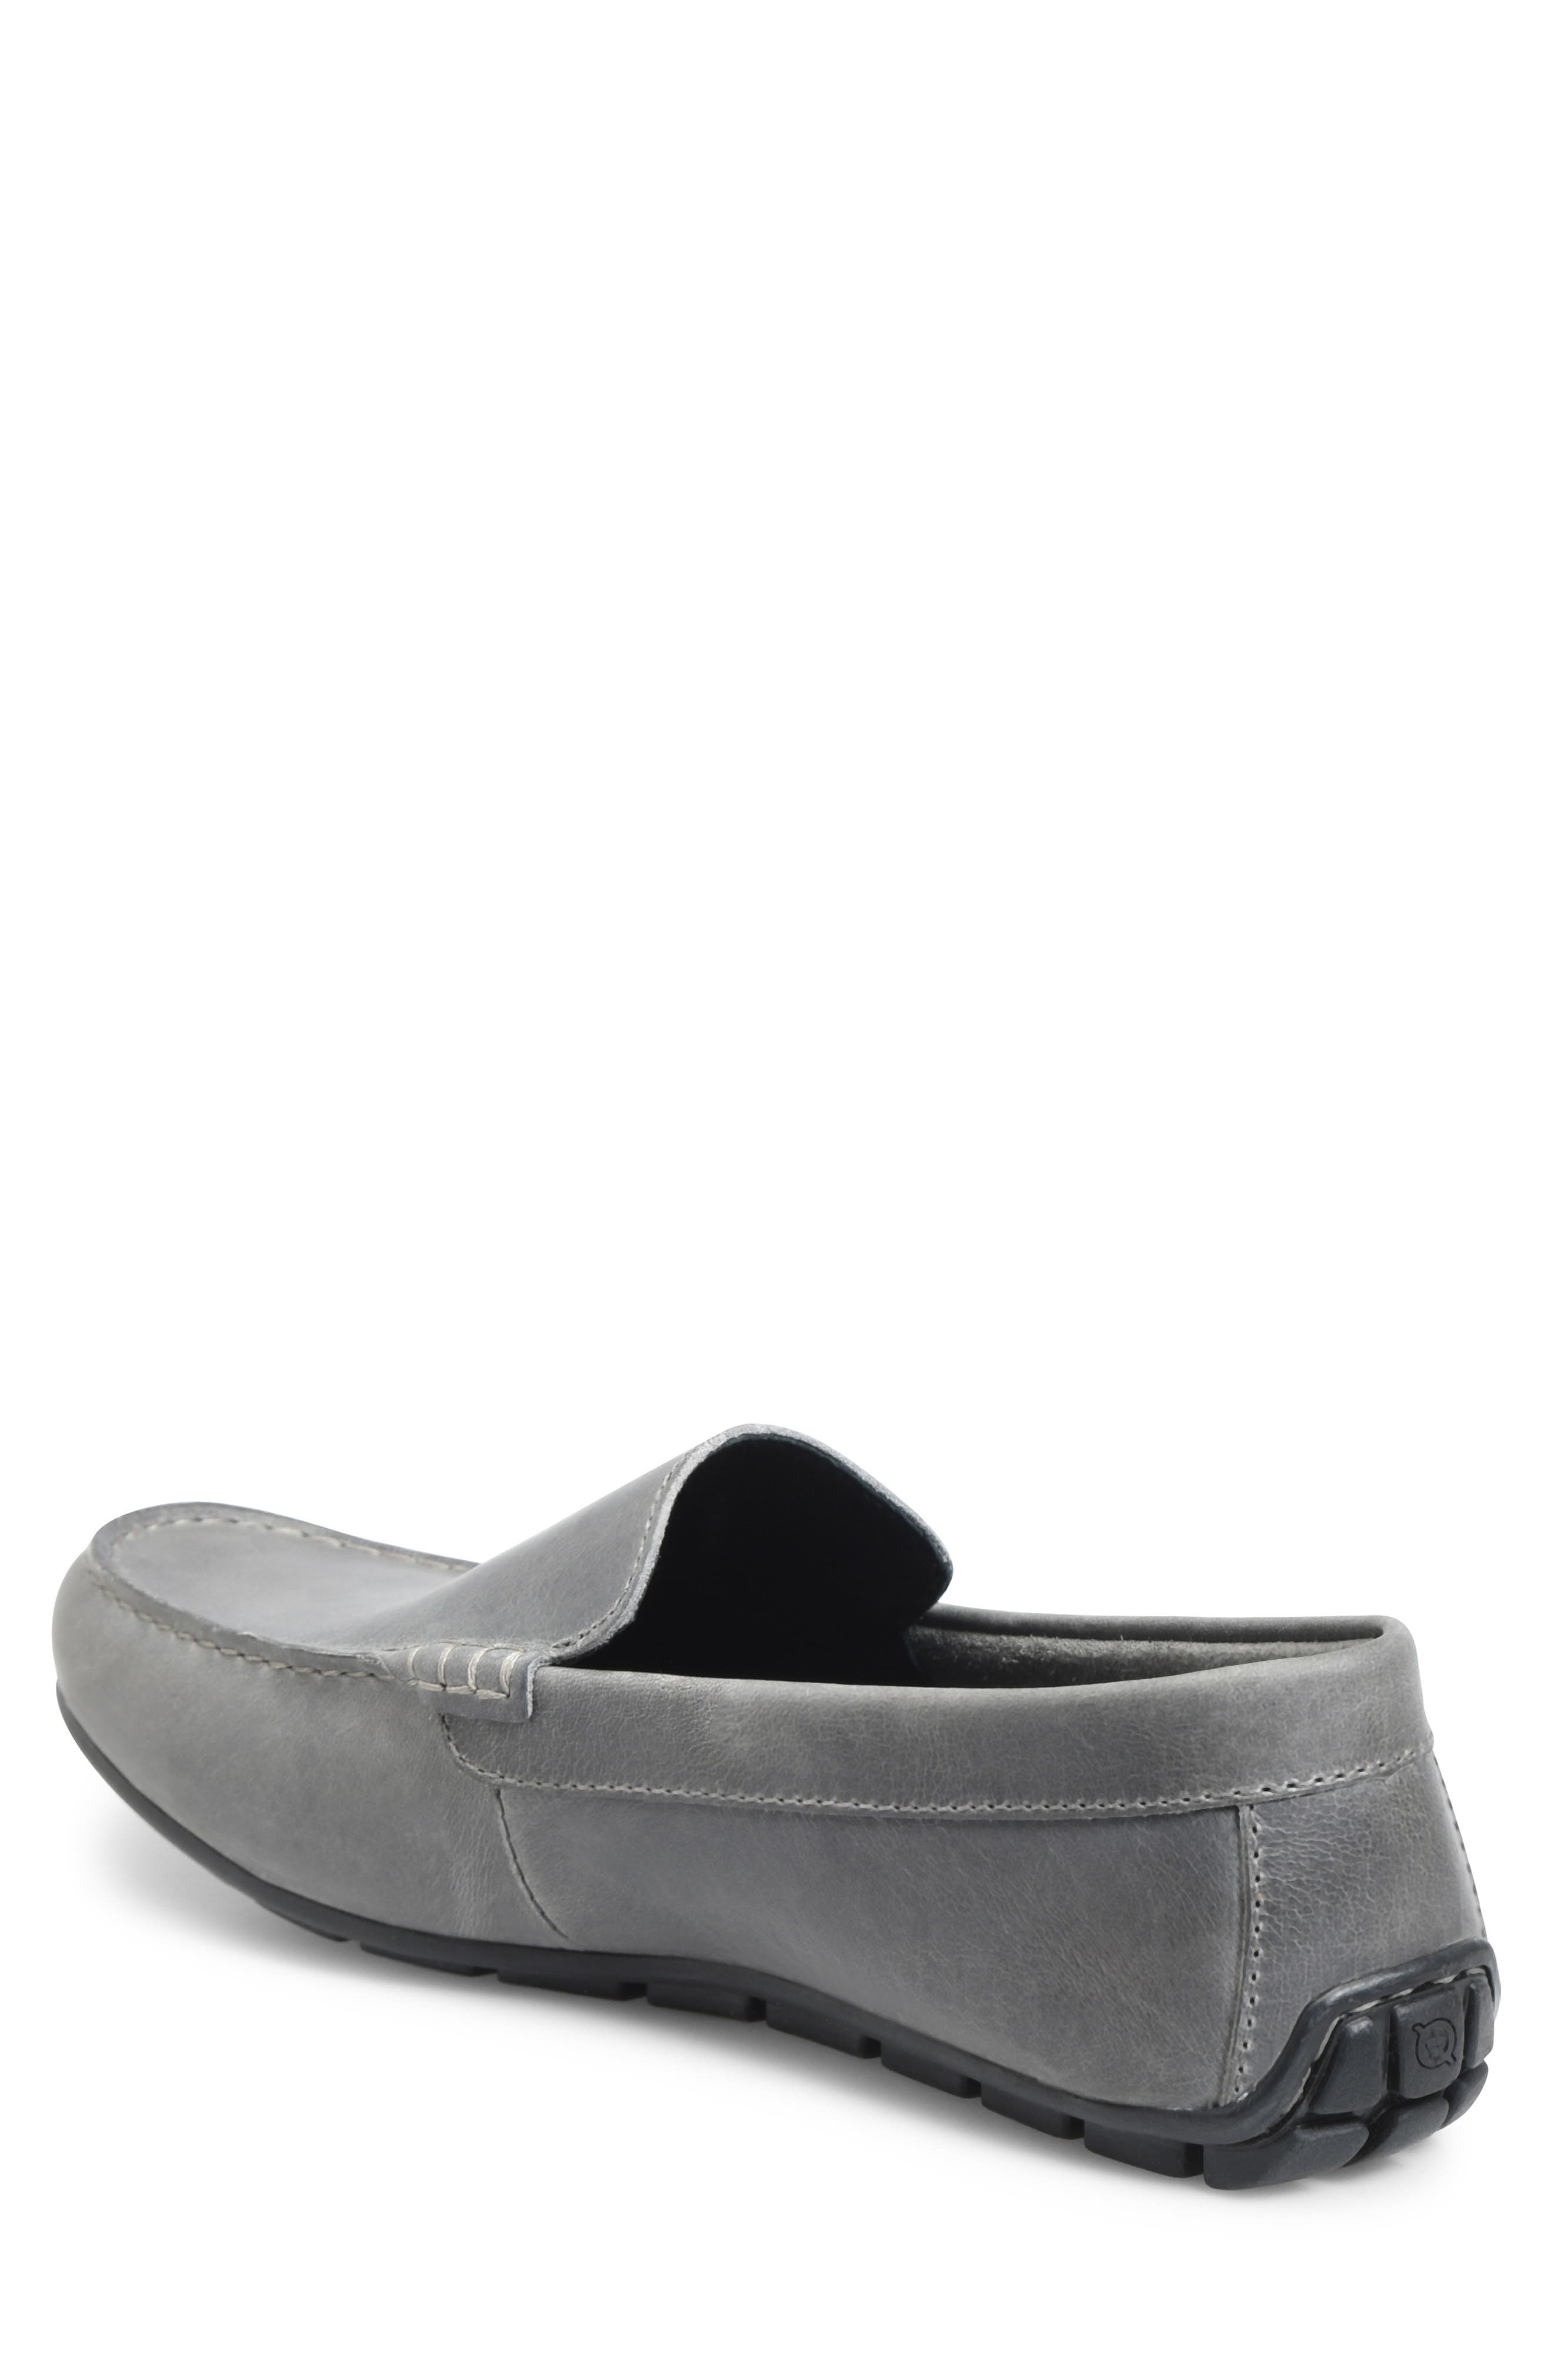 'Allan' Slip-On,                             Alternate thumbnail 2, color,                             025